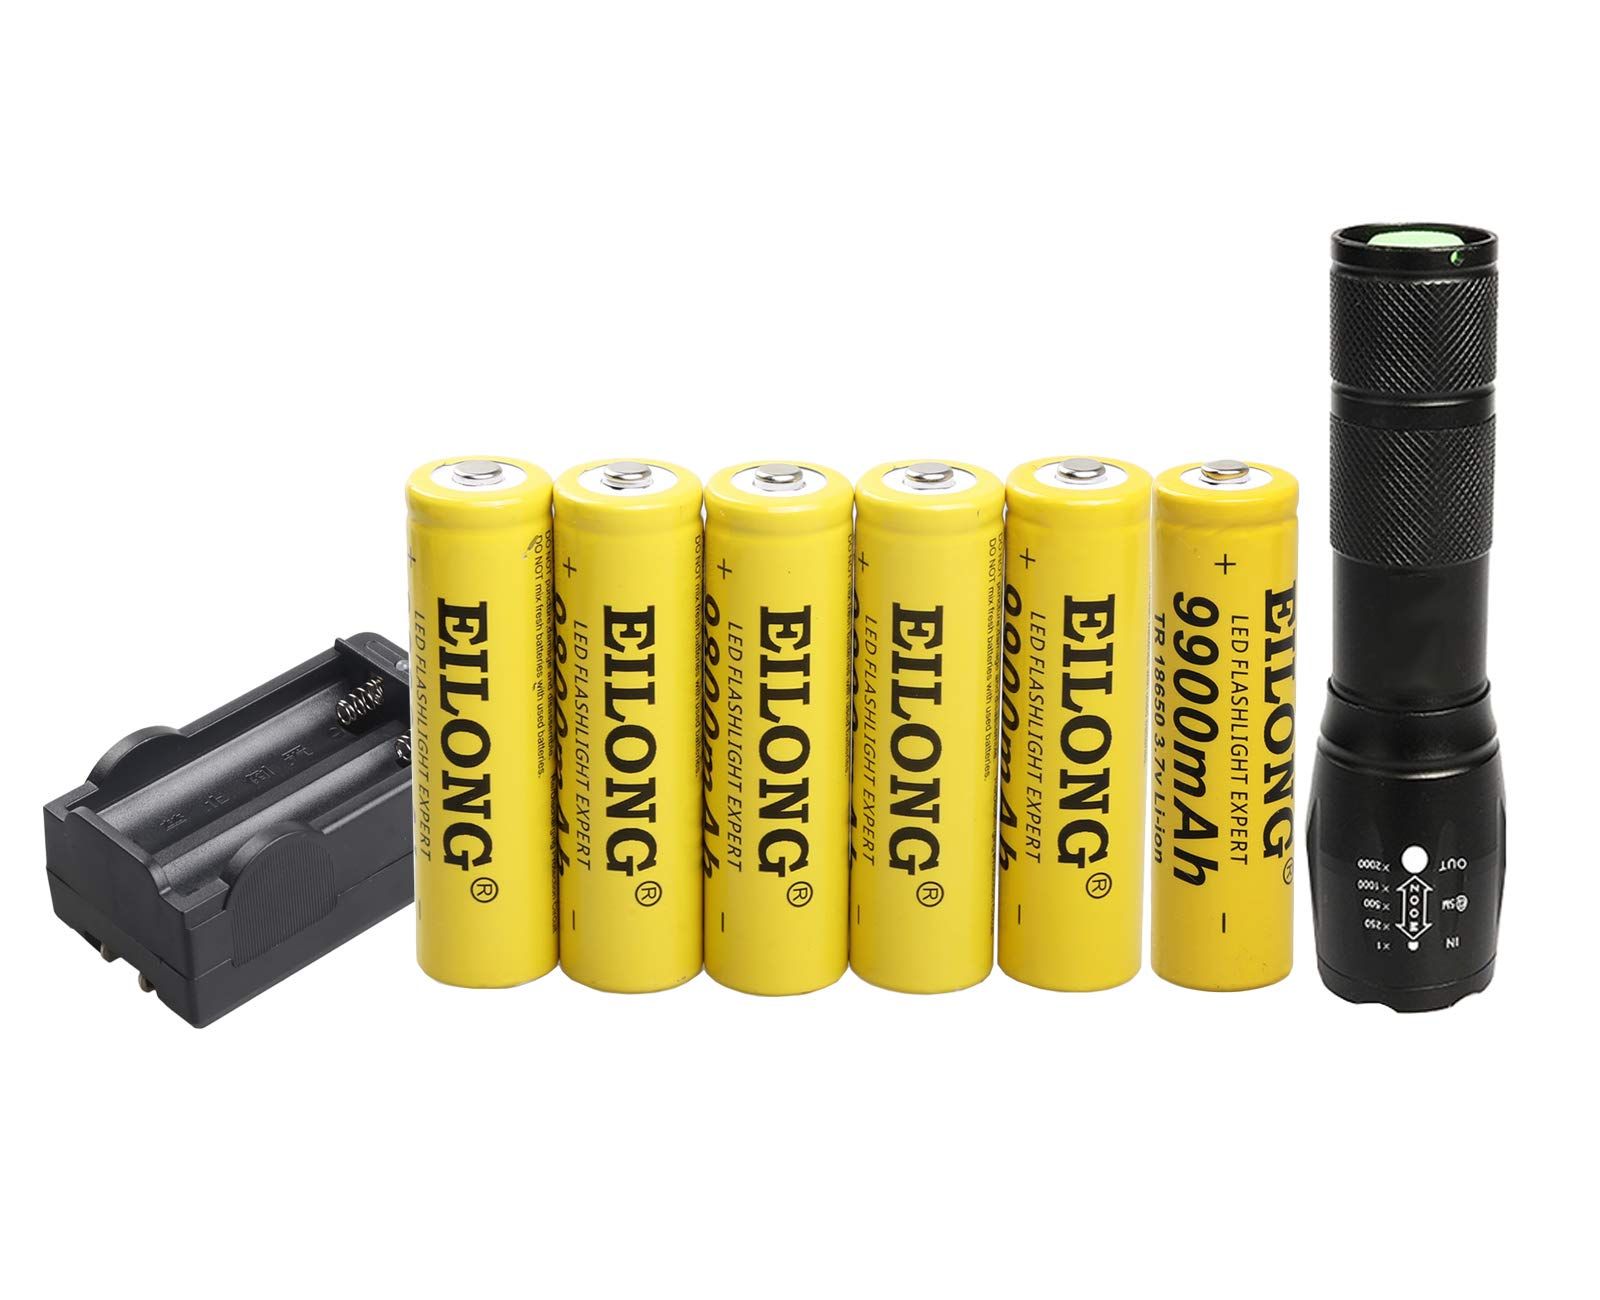 LED 1600 Lumen 18650 Flashlight with 6PCS 3.7V 9900mAh Rechargeable Battery and Charger,Ultra Bright Adjustable Focus and 5 Modes